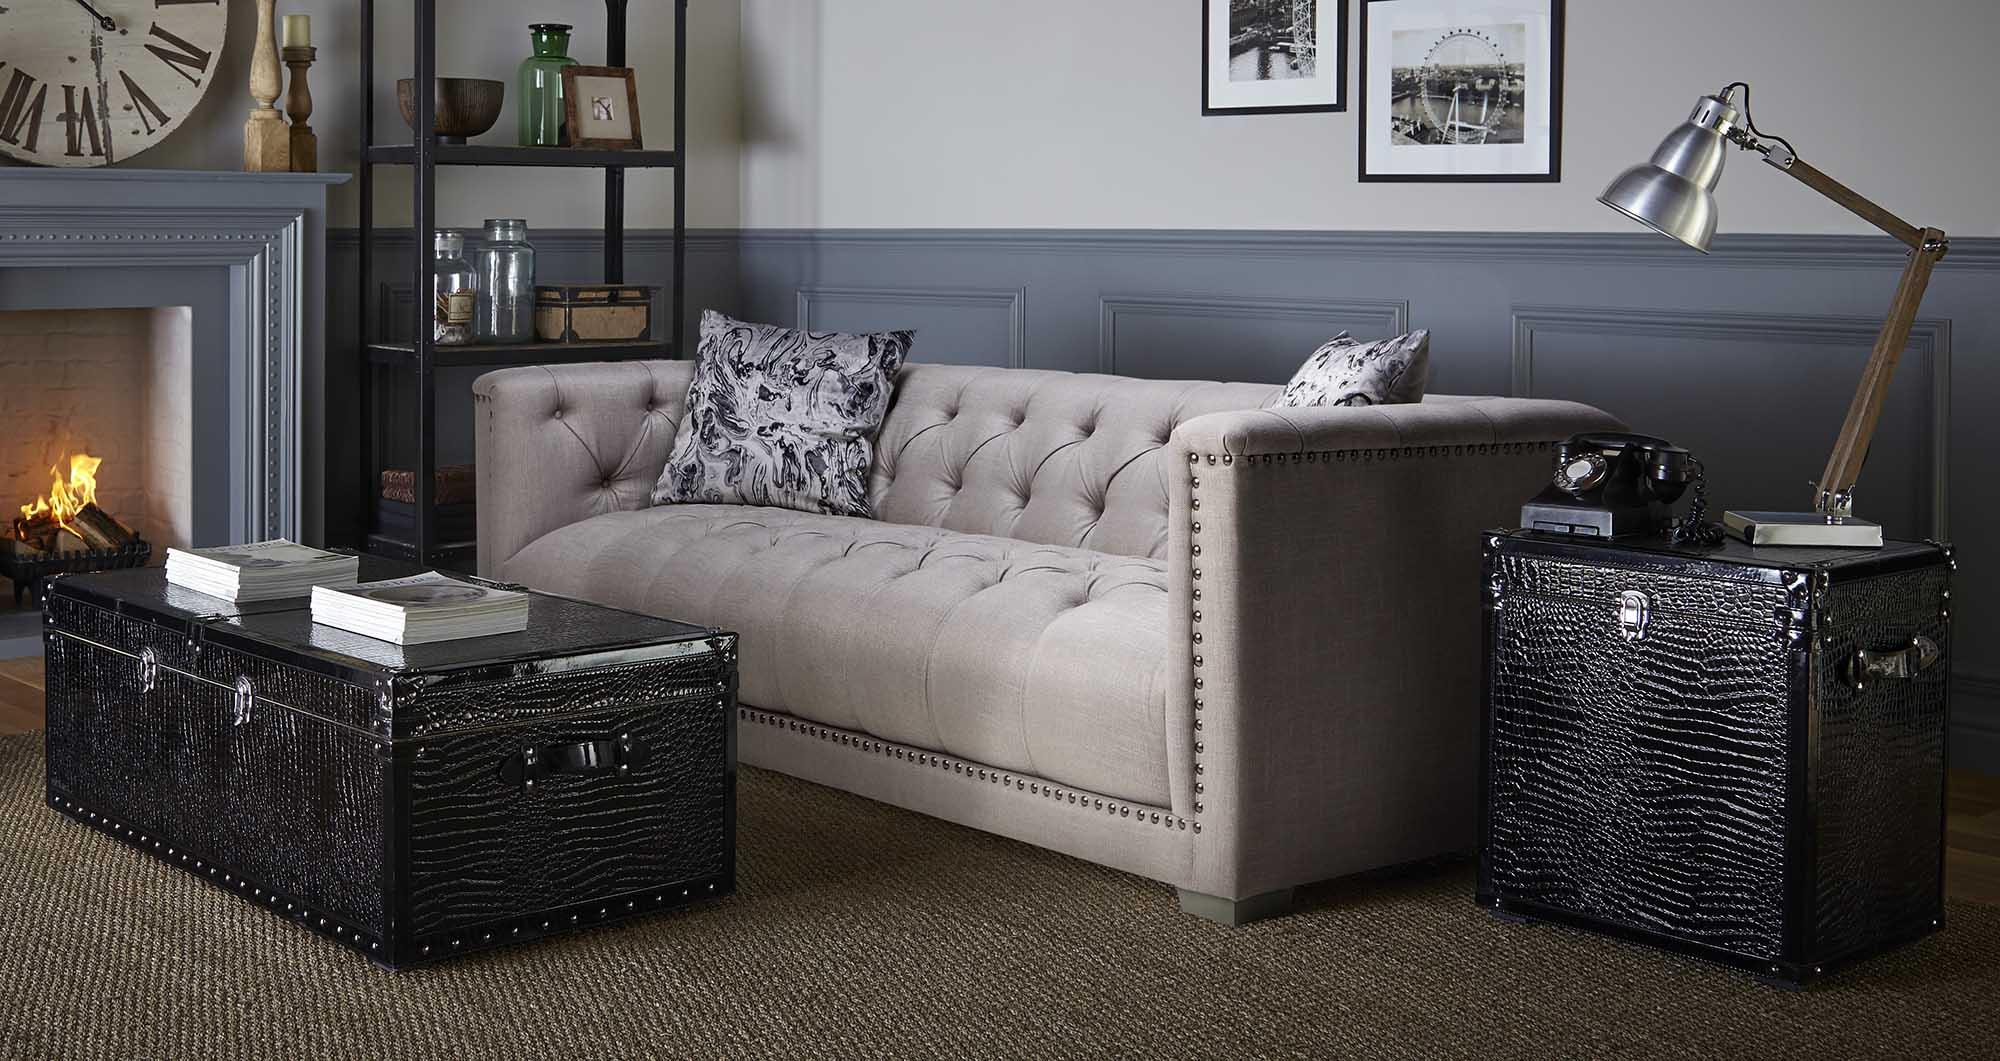 Chesterfield Sofa Espana Chesterfield Sofas | Dfs Spain